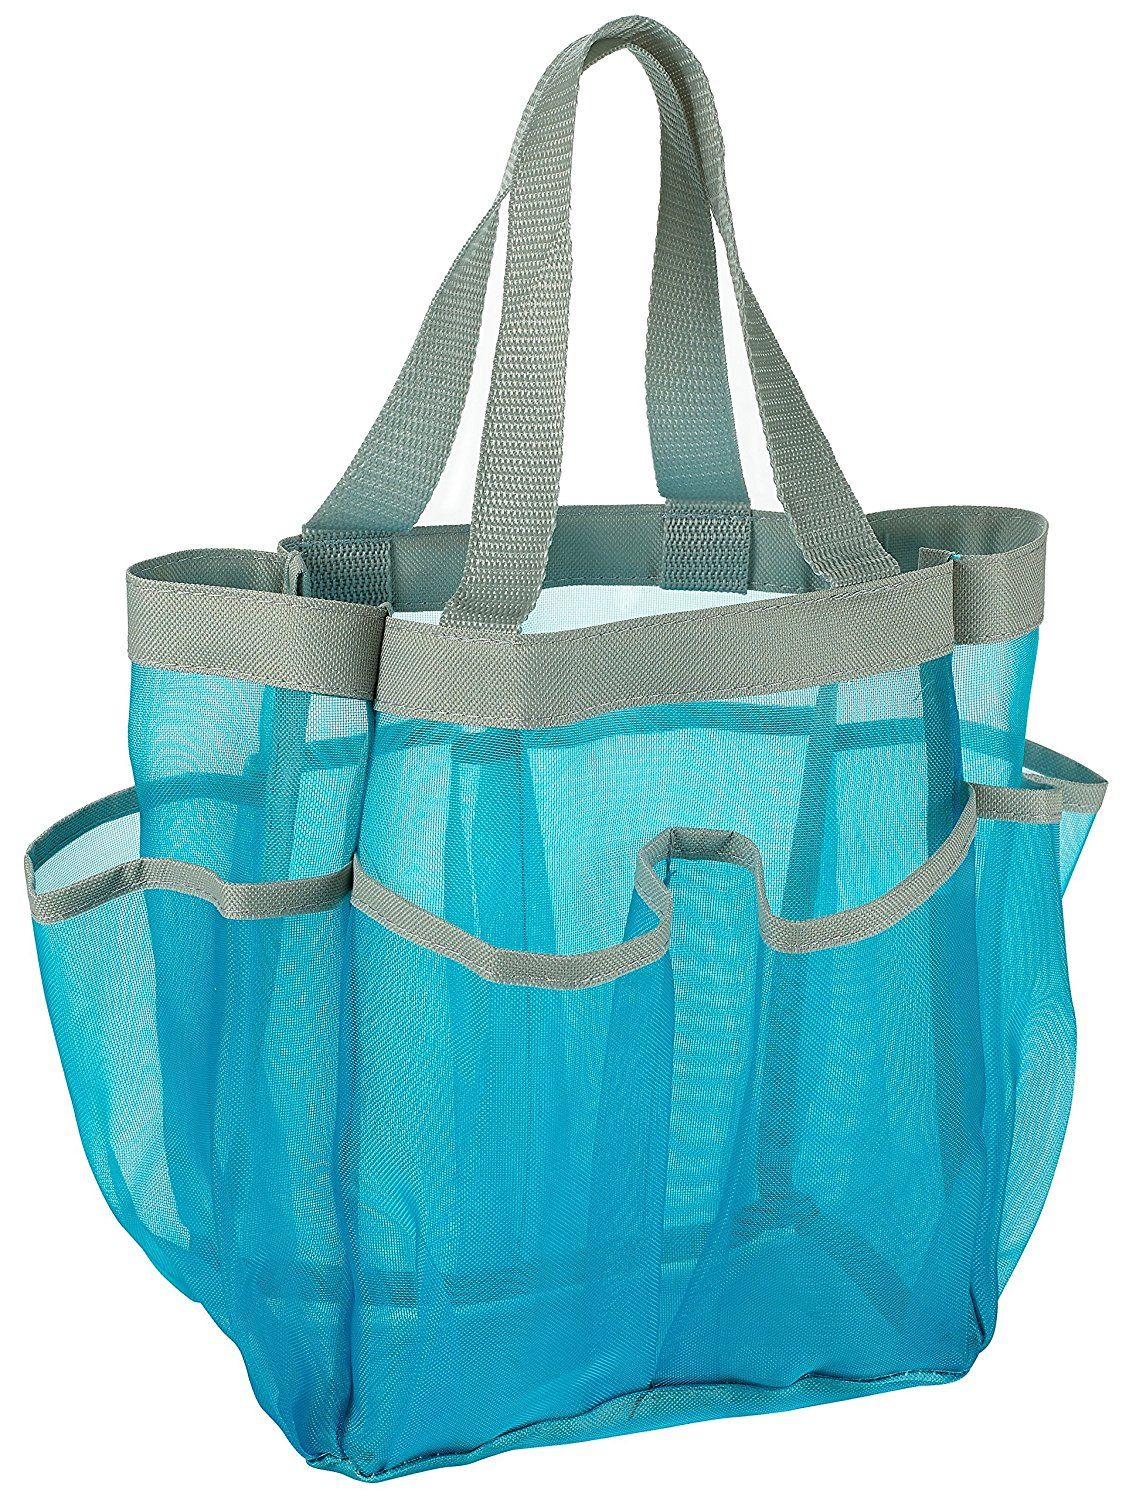 Amazon.com: 7 Pocket Shower Caddy Tote, Blue - Keep your shower ...